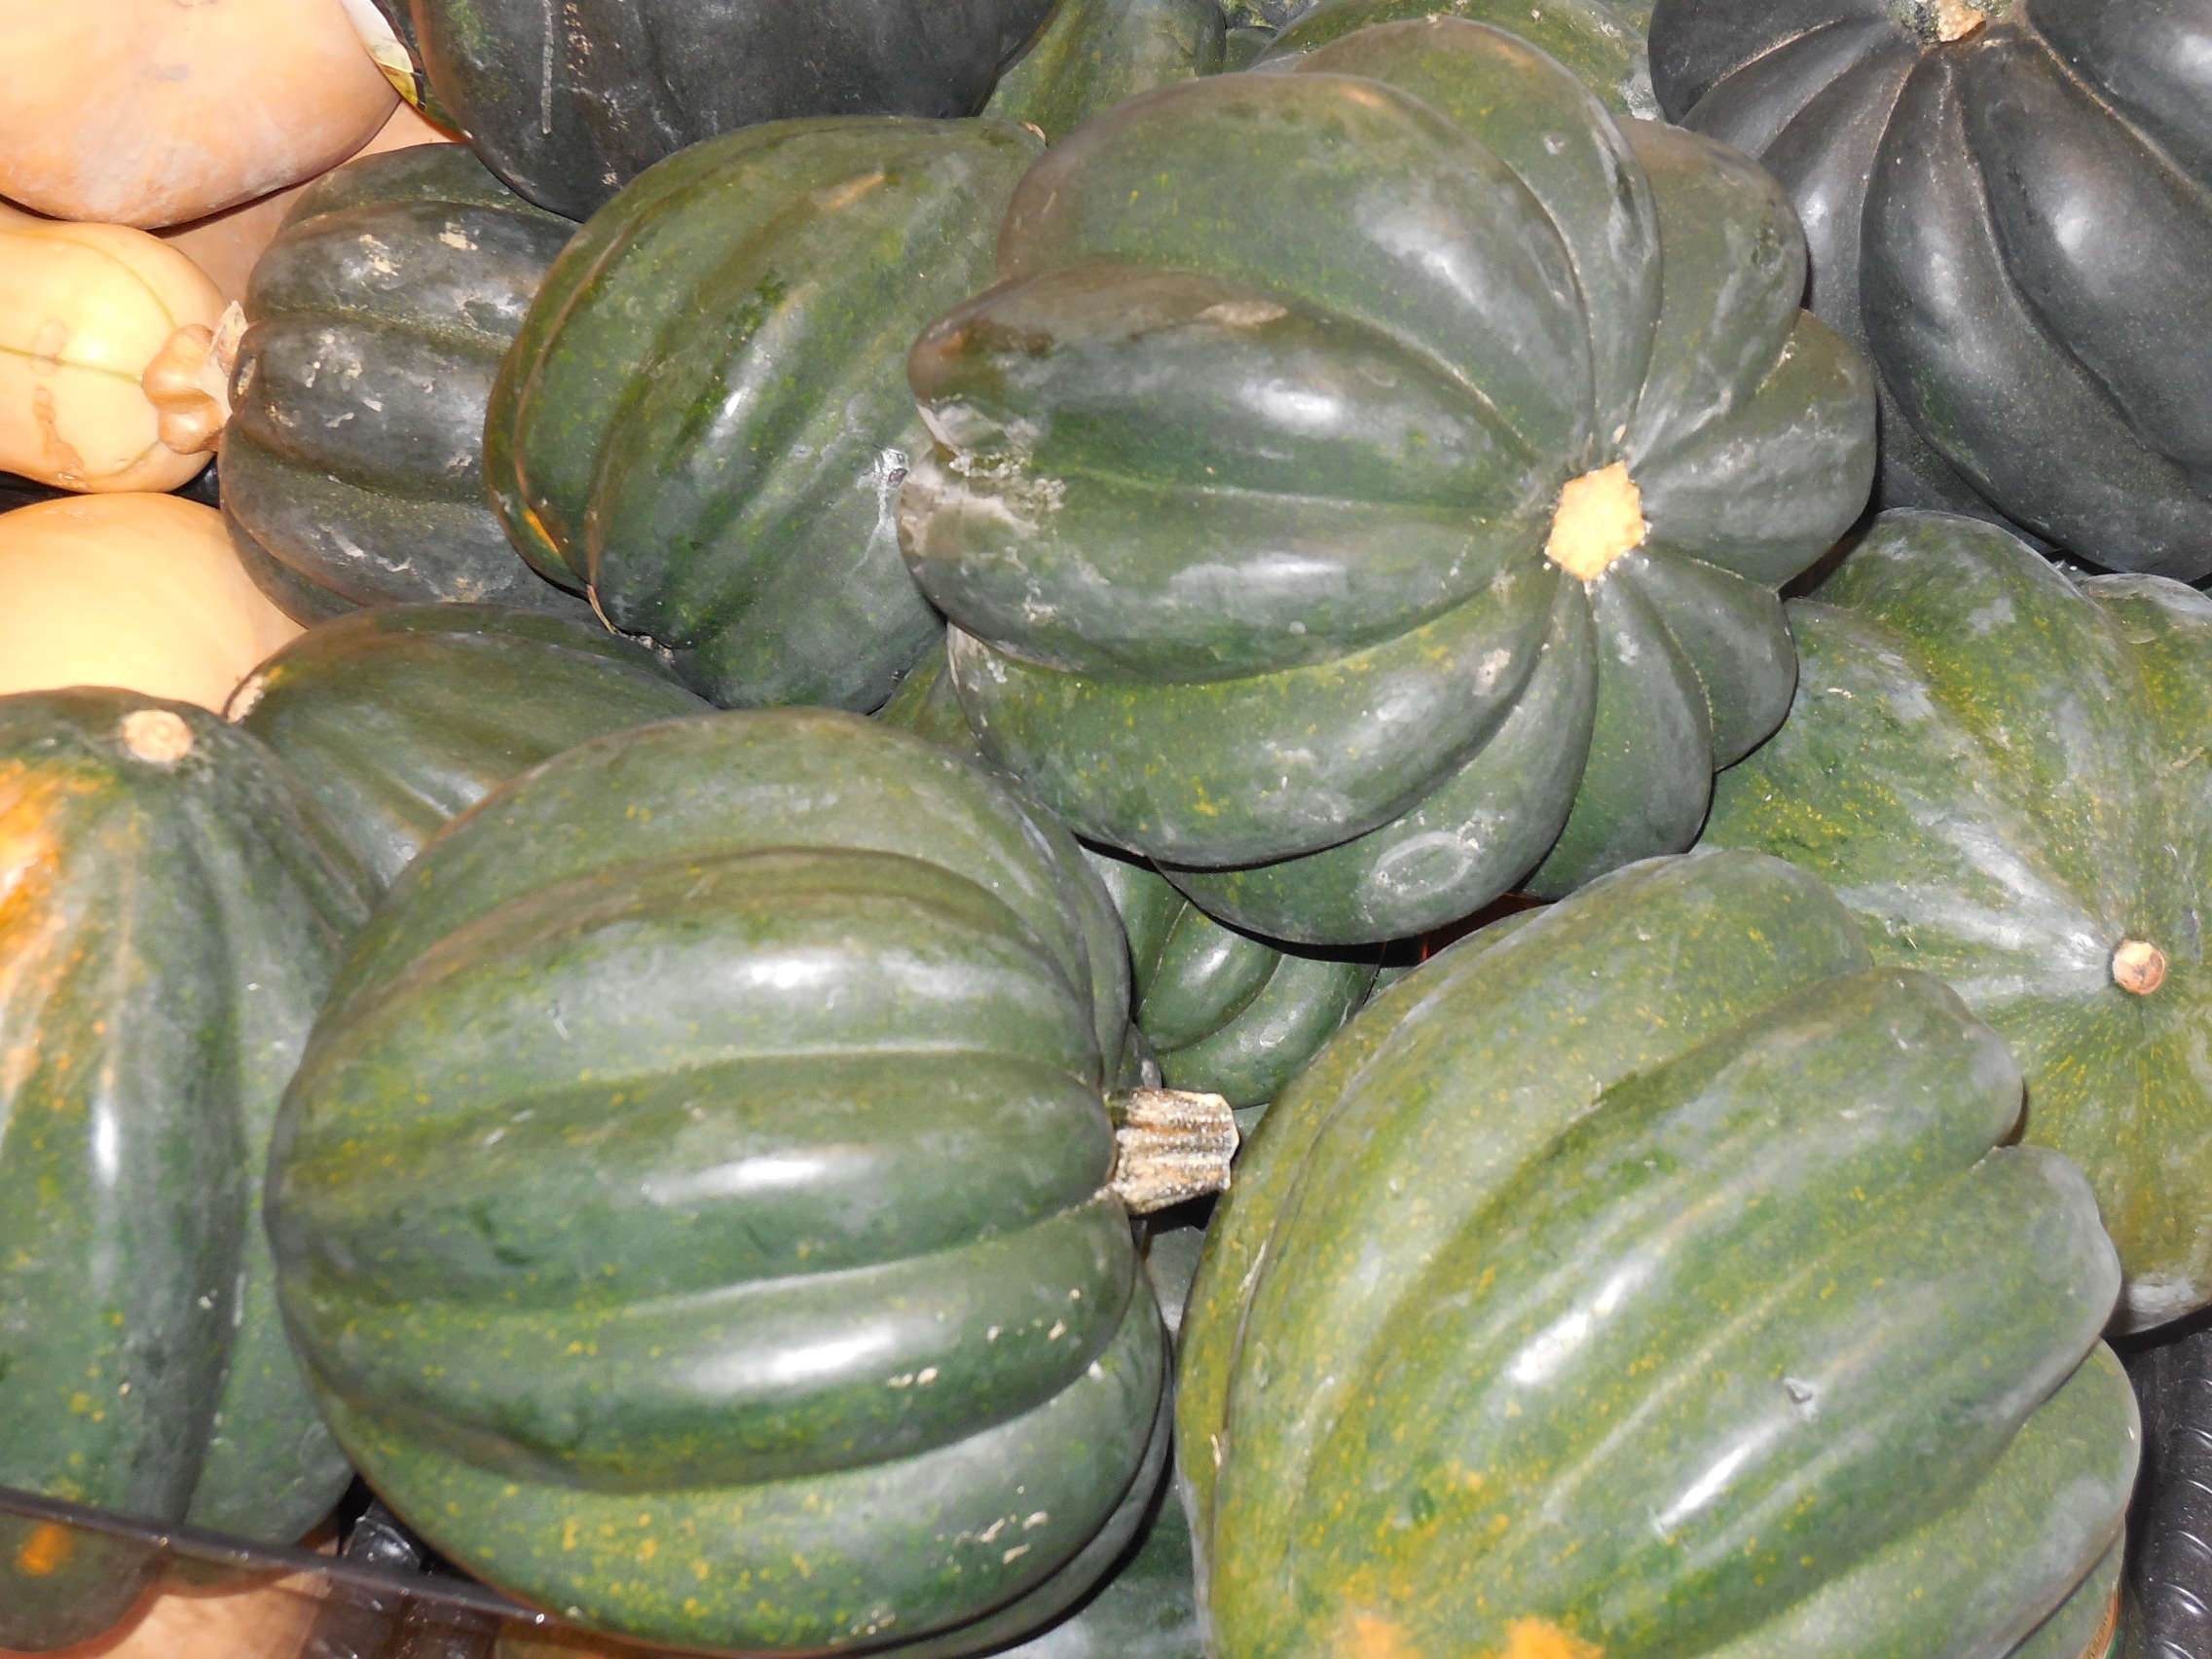 Butterkin Is A New Variety Of Squash Haul Produce